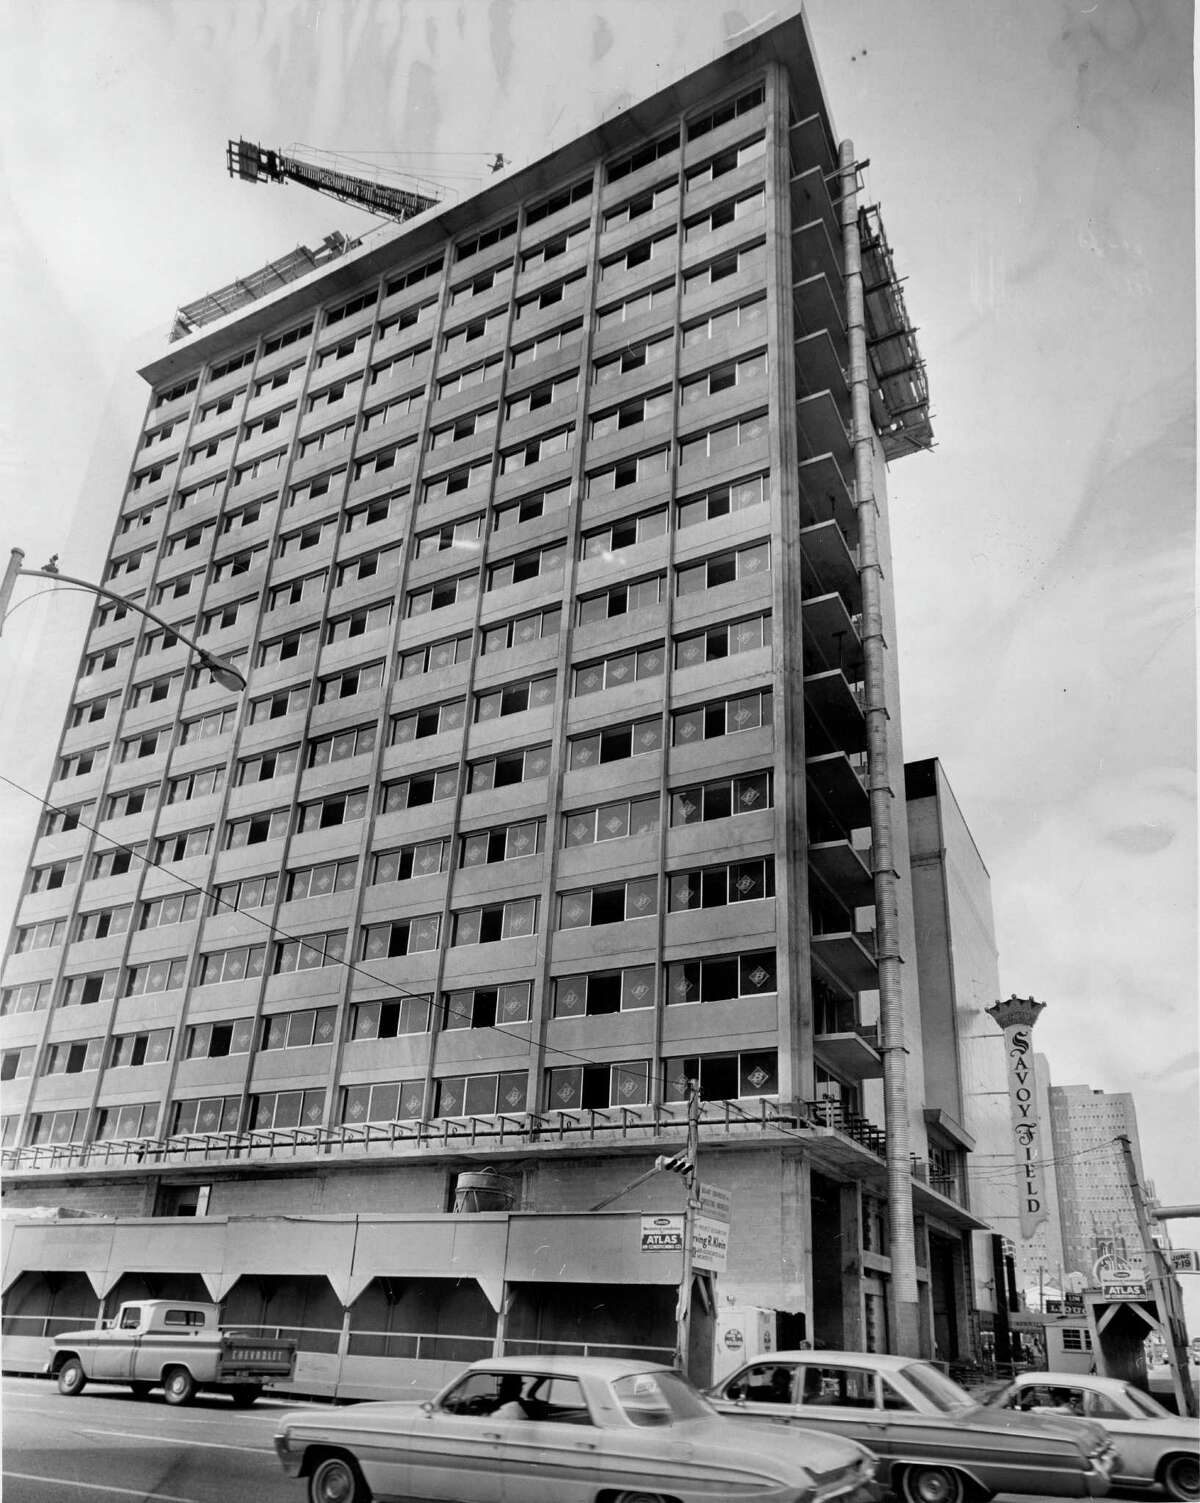 The 17-story addition to the Savoy Hotel, at the corner of Main and Pease, is shown under contruction in 1966.